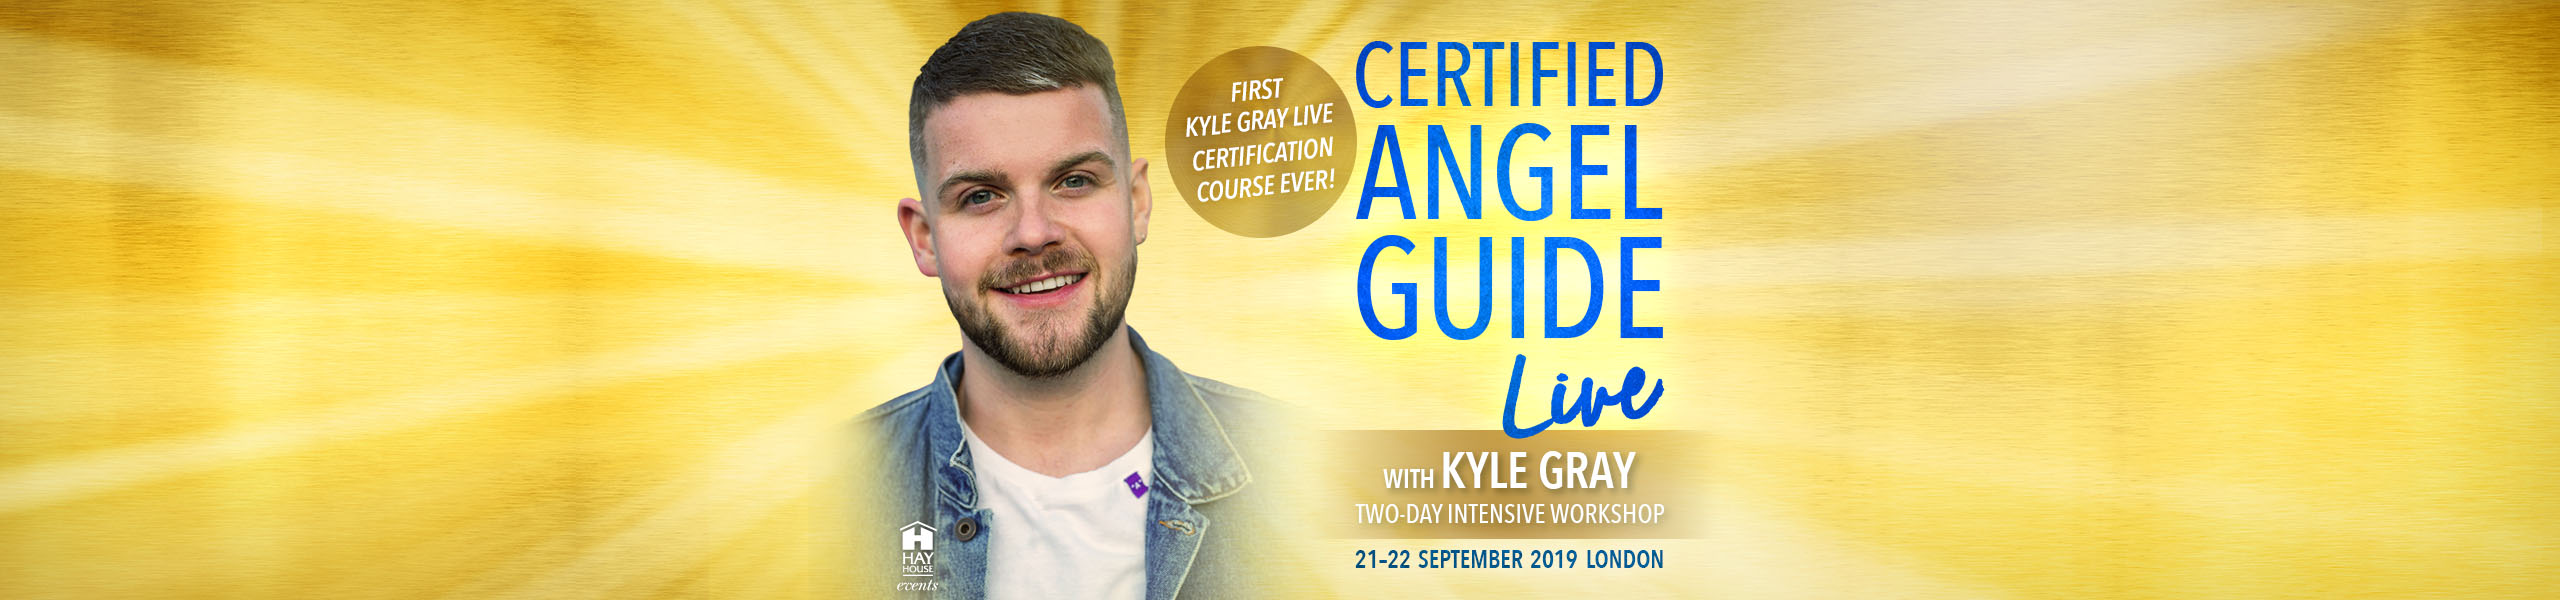 Certified Angel Guide Live